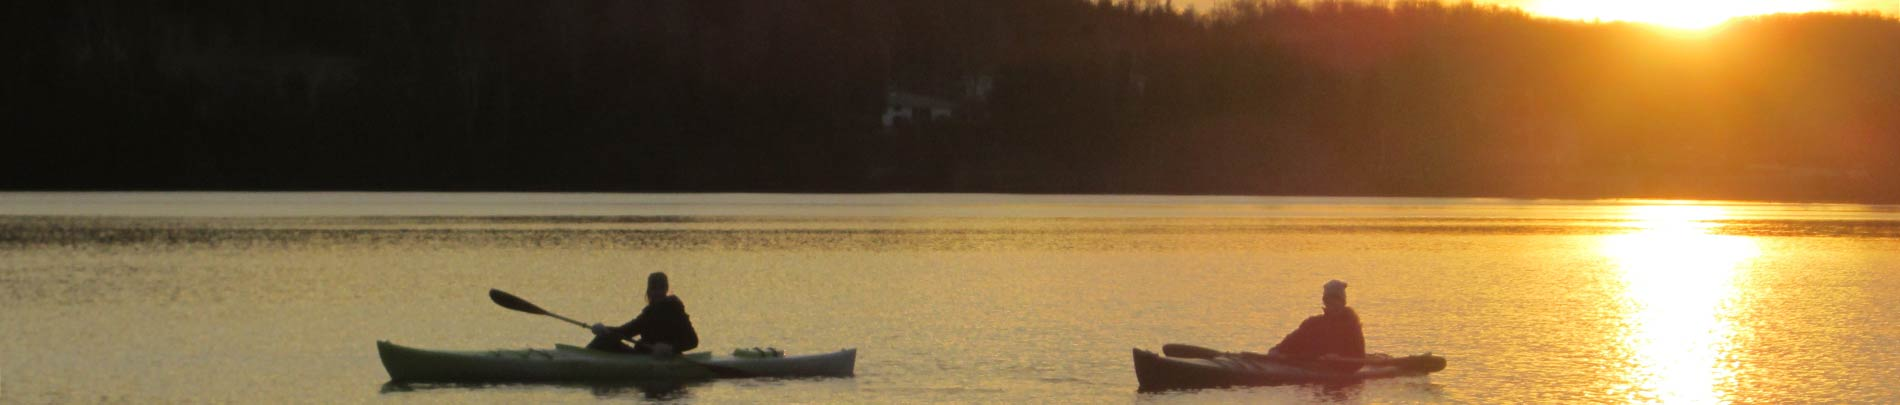 Canoes on Wilbermere Lake at sunset.